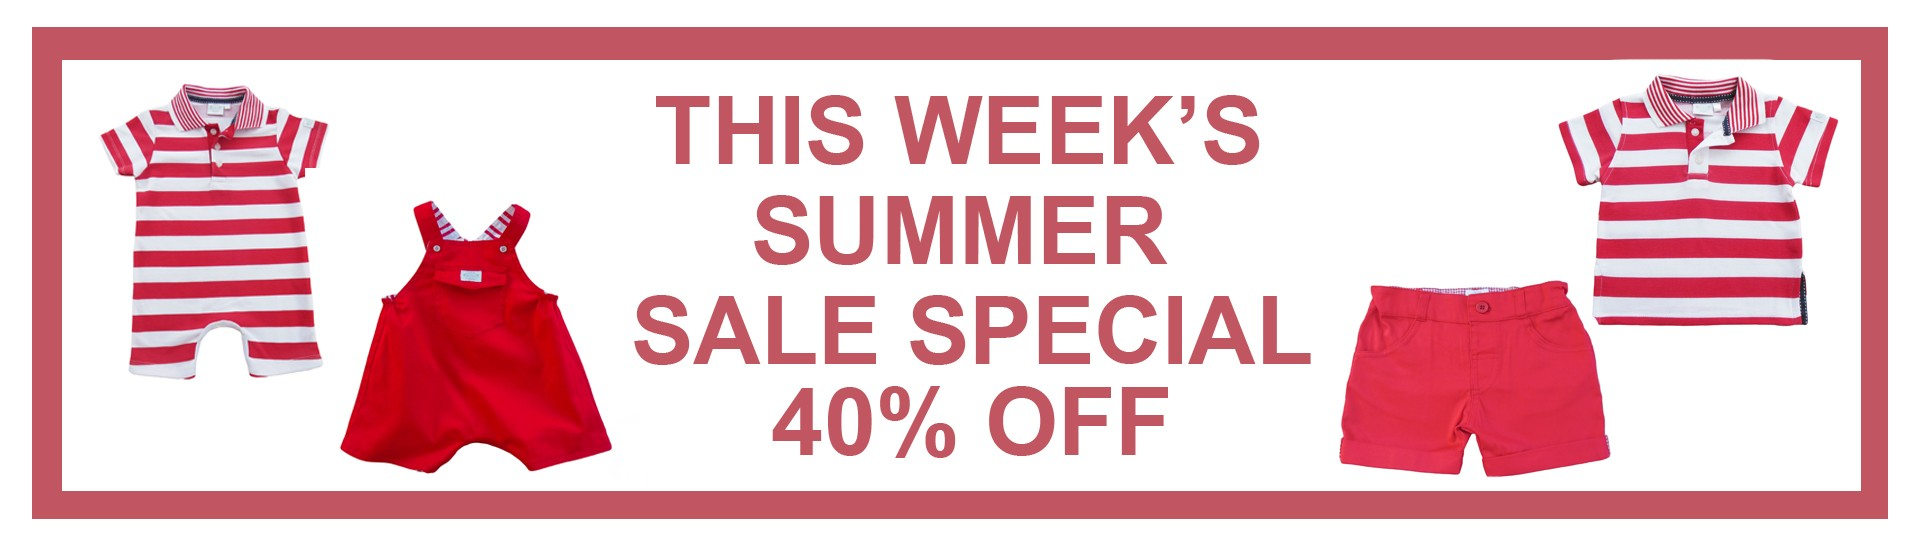 Summer Sale Special 2